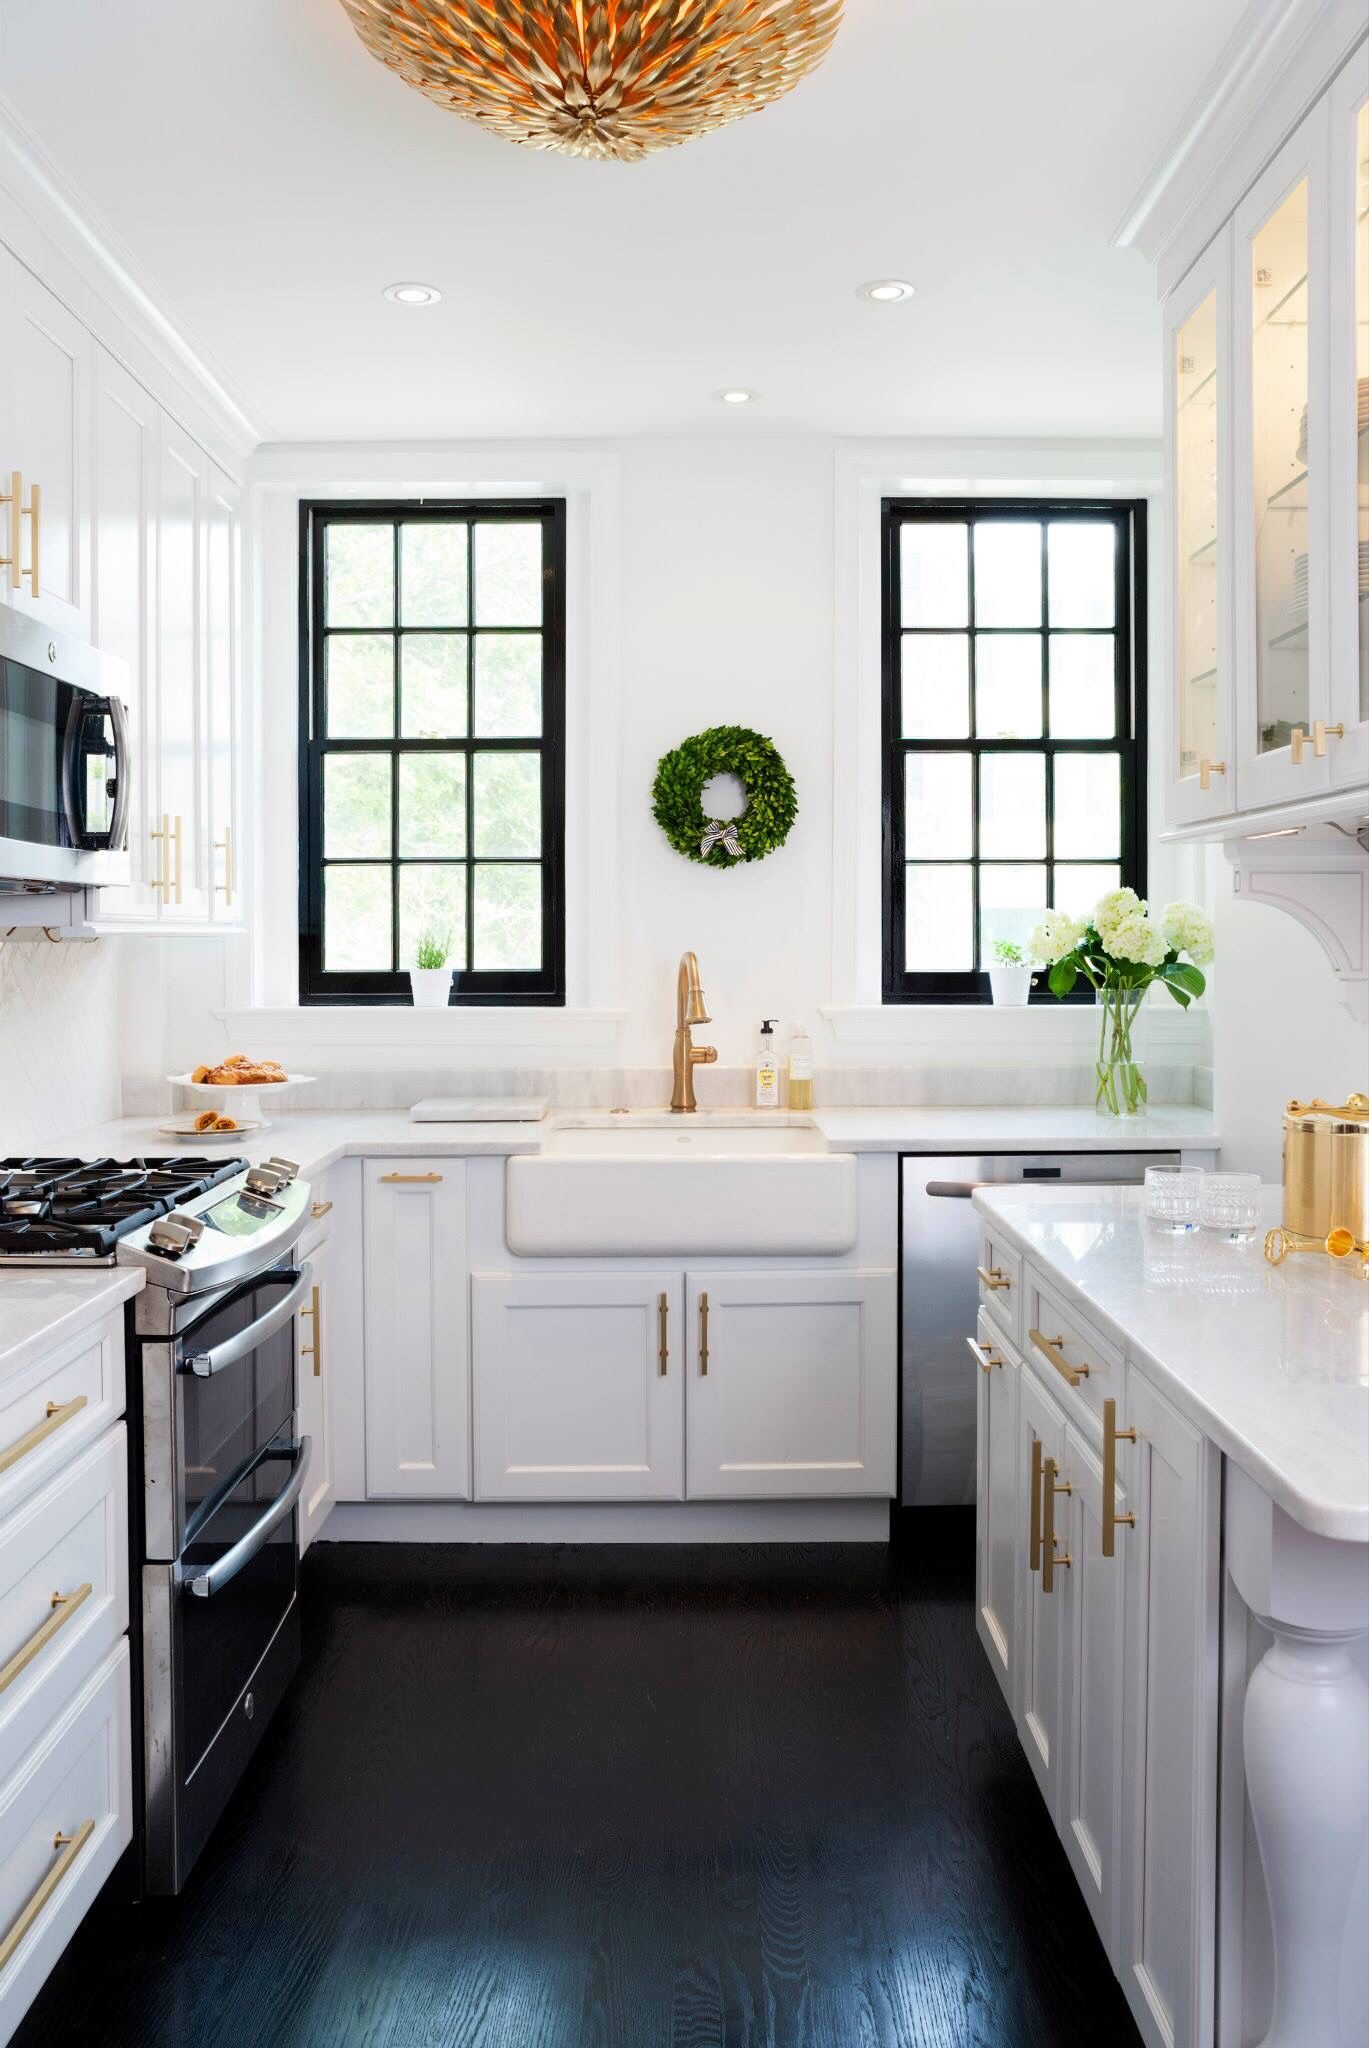 White Kitchen Cabinets With Brass Hardware New Super White Countertops Black Wood Floor White Kitchen Design Kitchen Design Kitchen Countertops